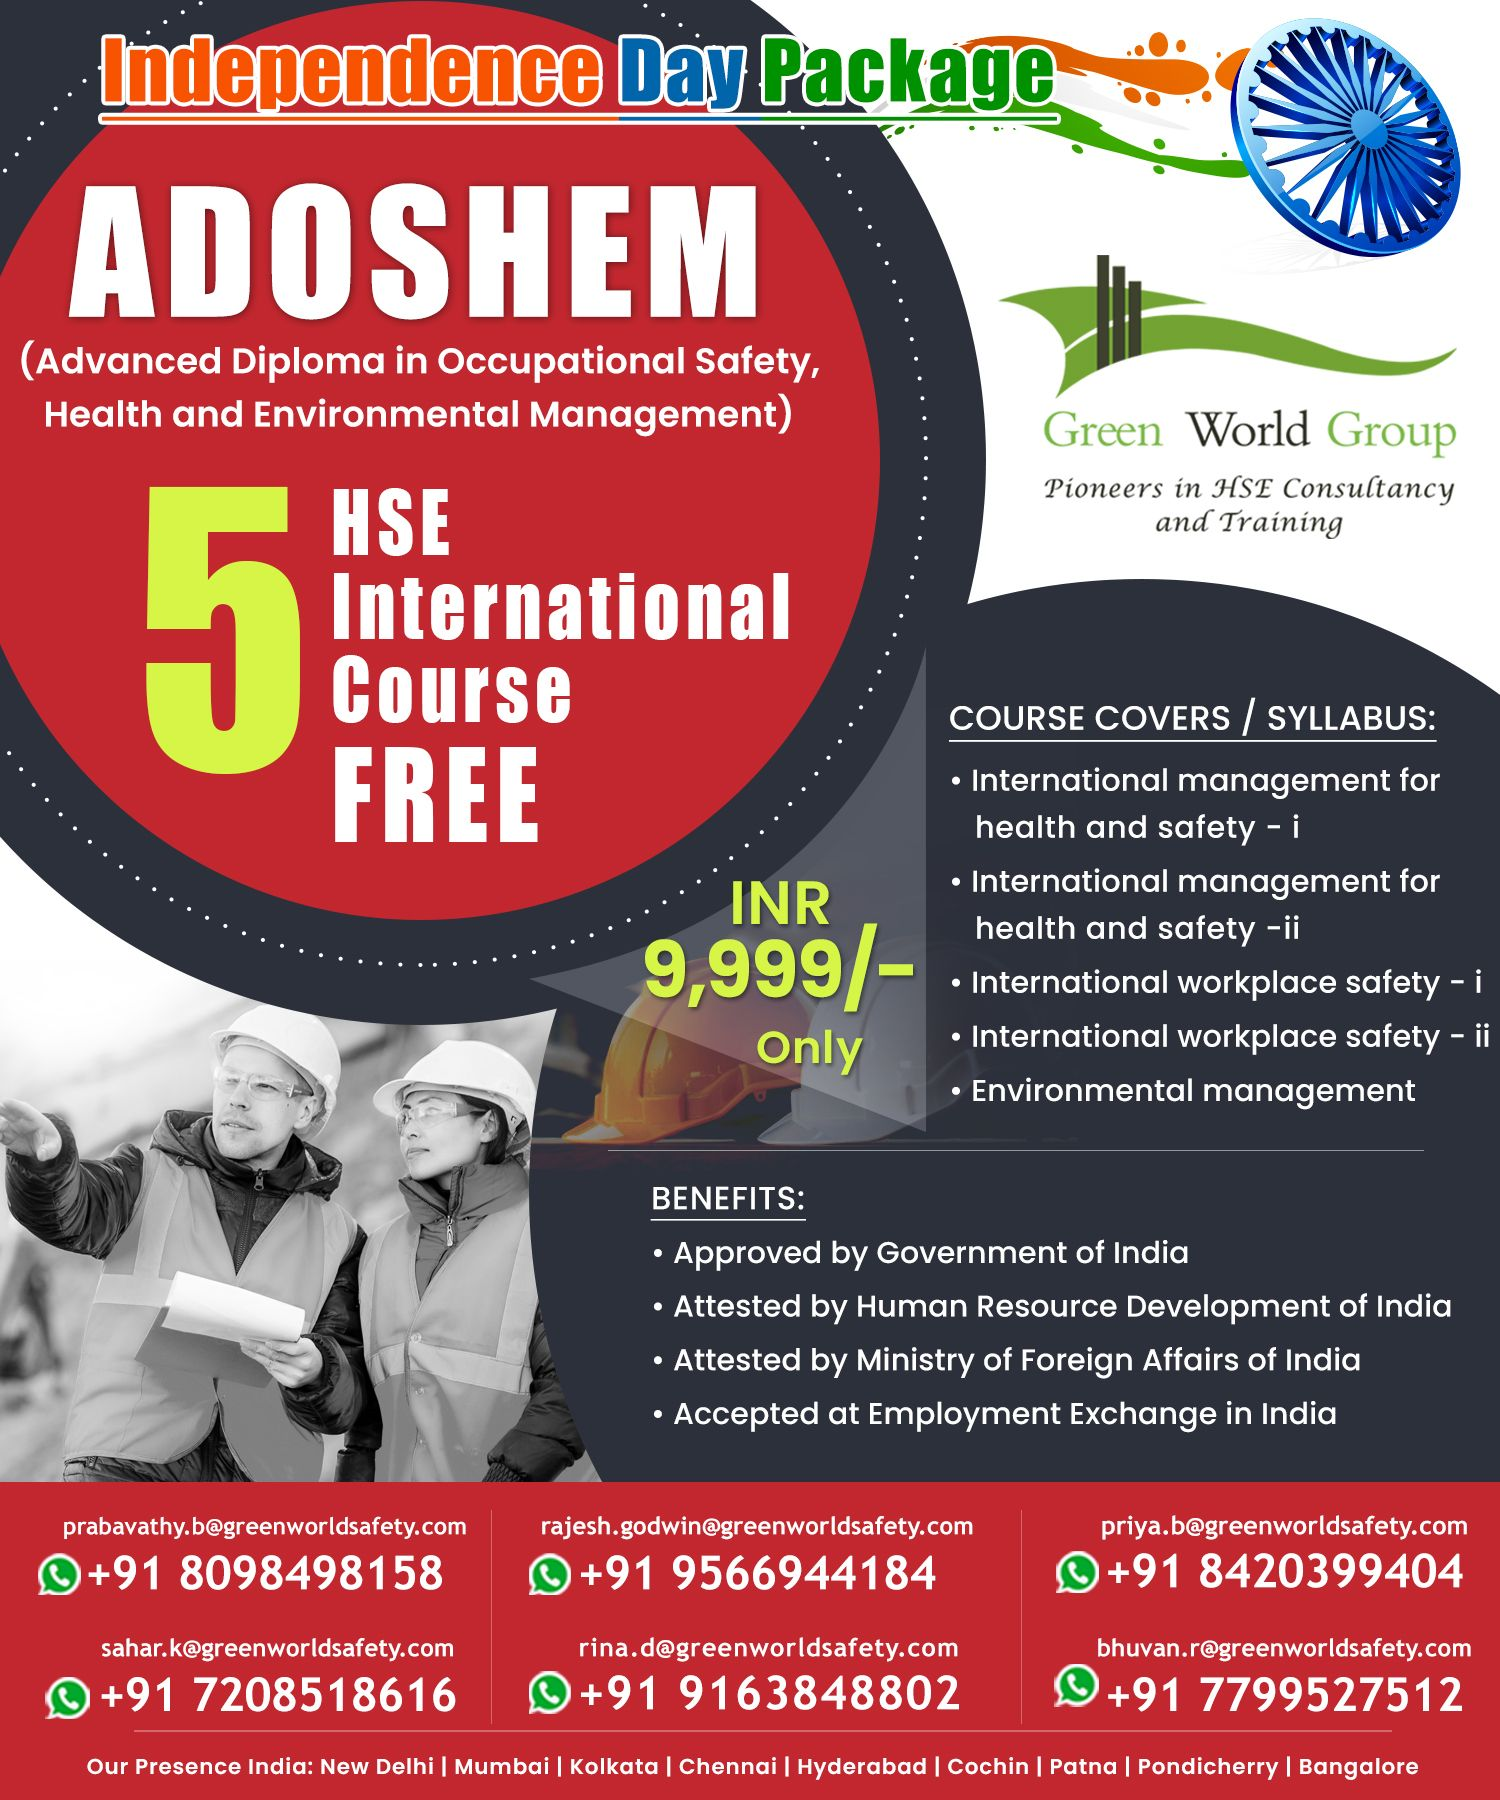 Independence day package offer for adoshem in chennai in